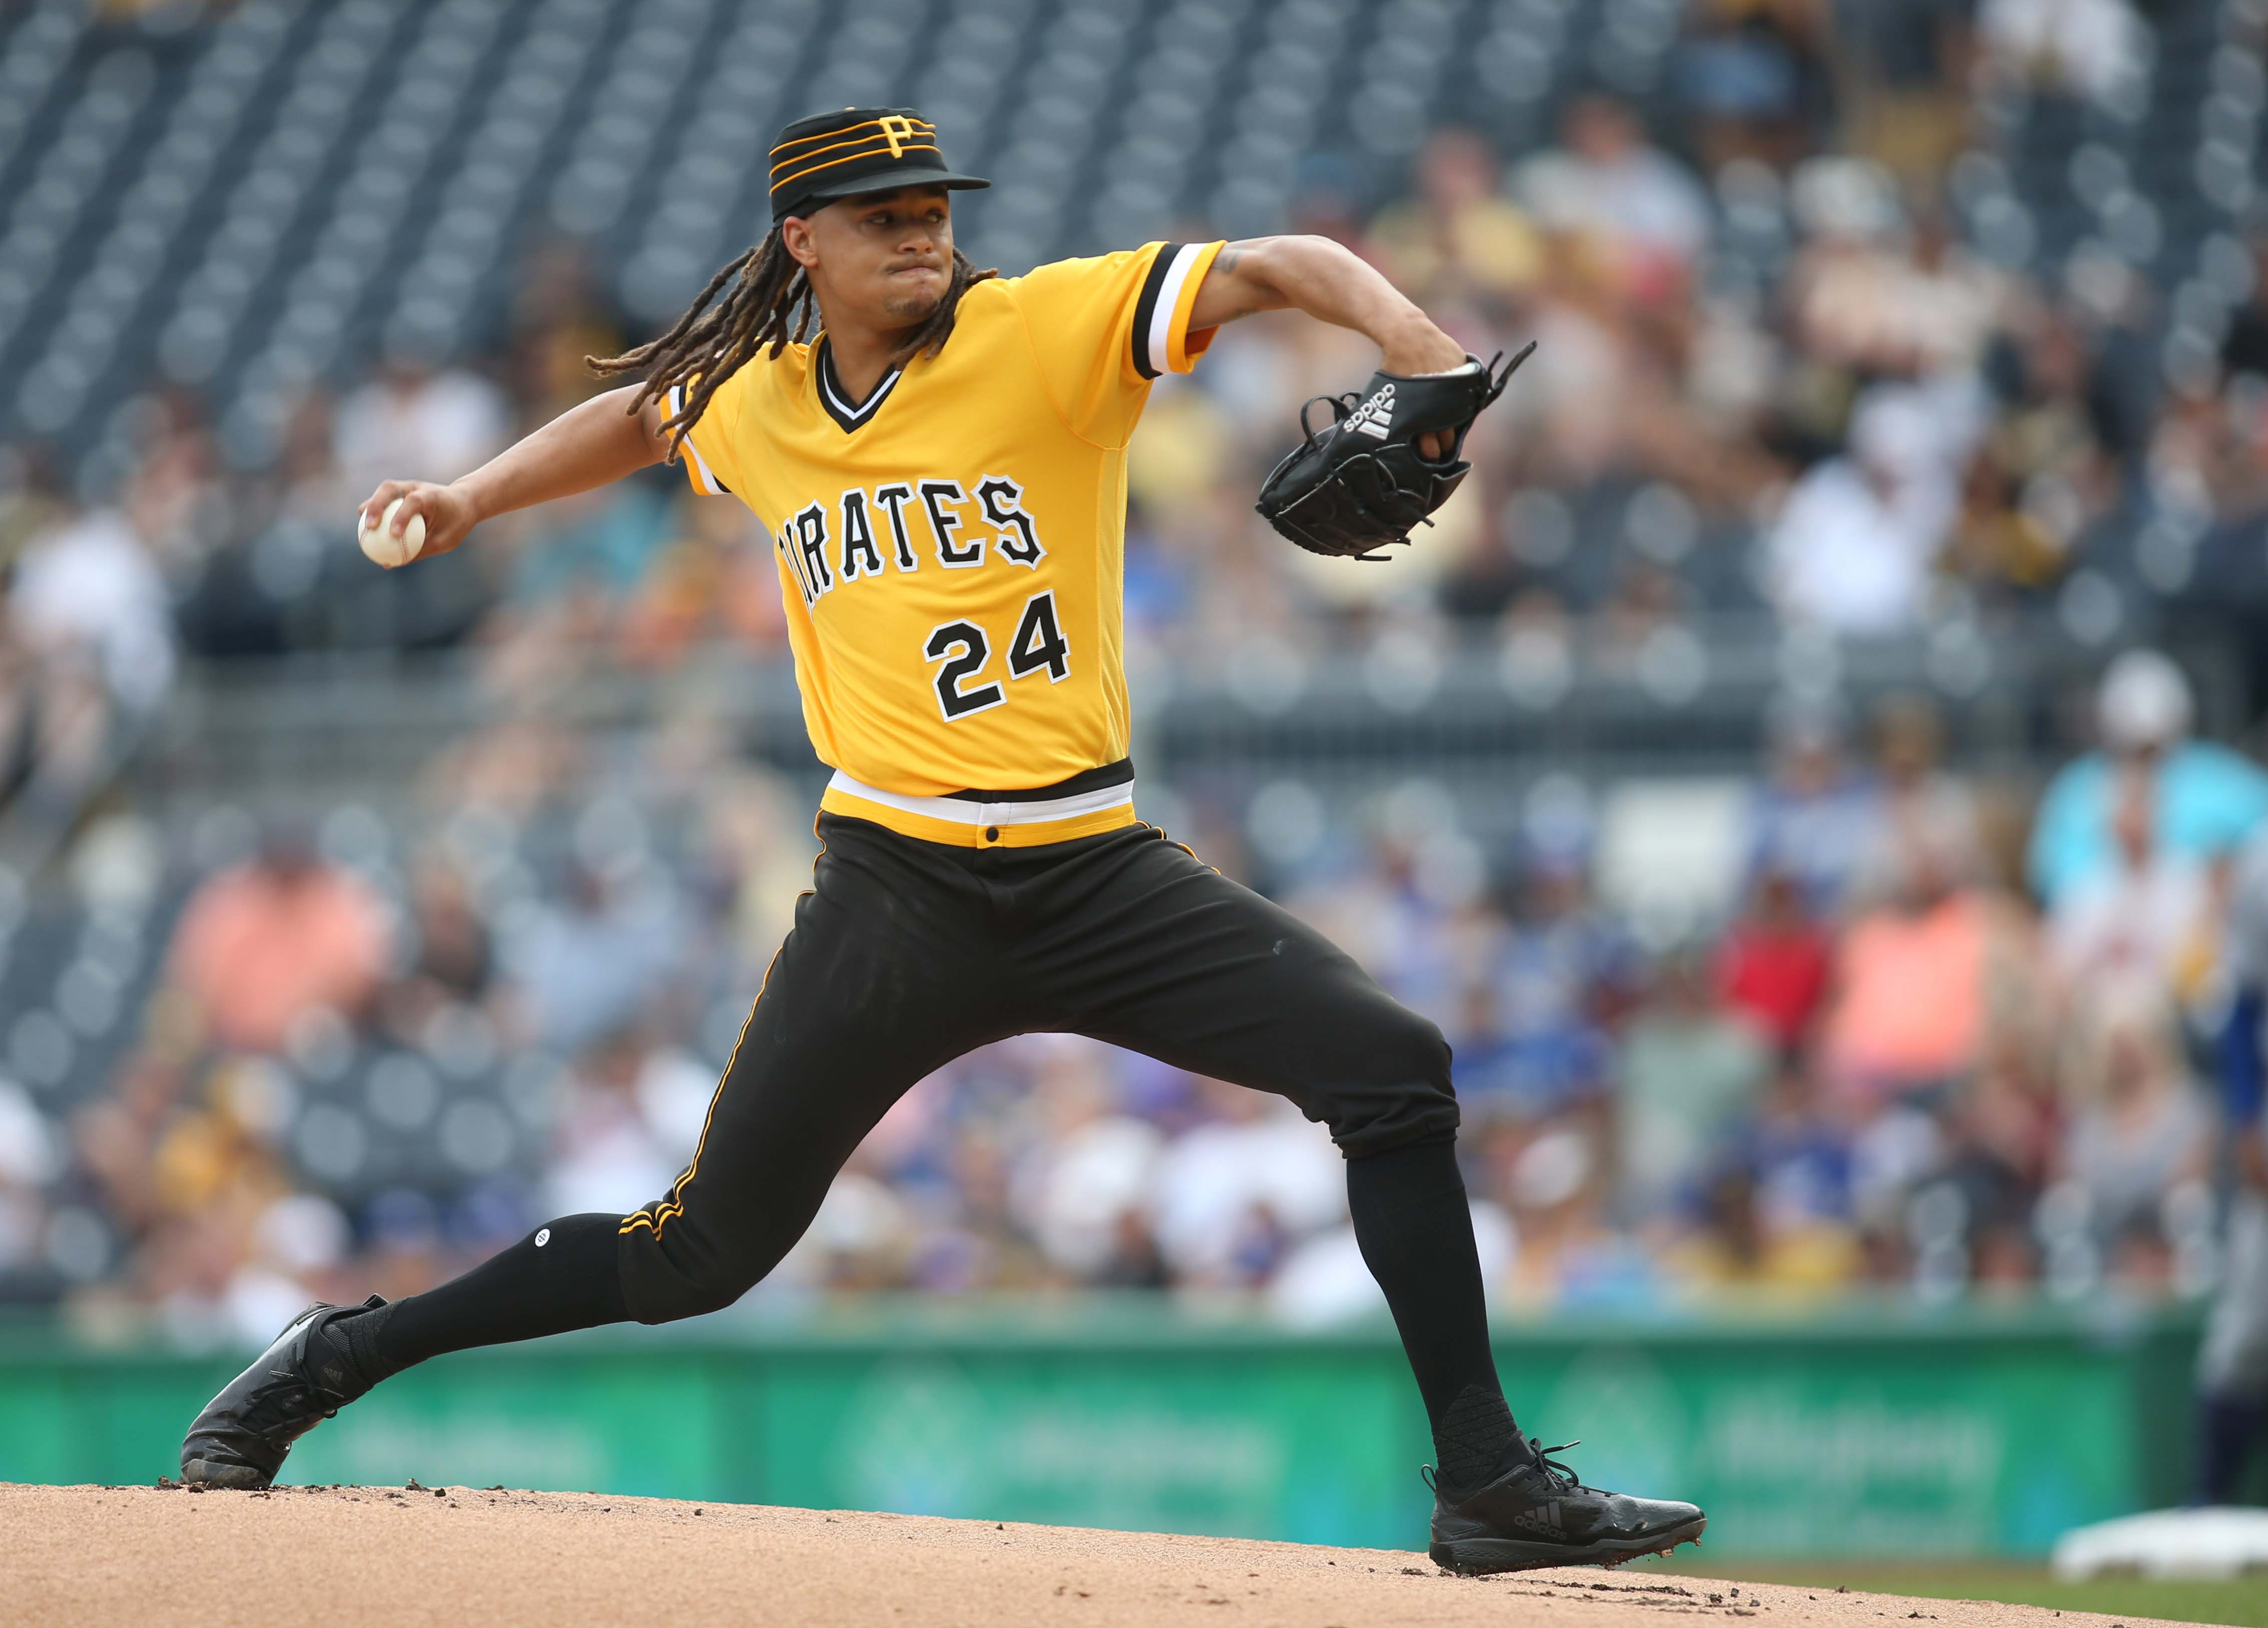 Pittsburgh Pirates aren't getting the Chris Archer they hoped for